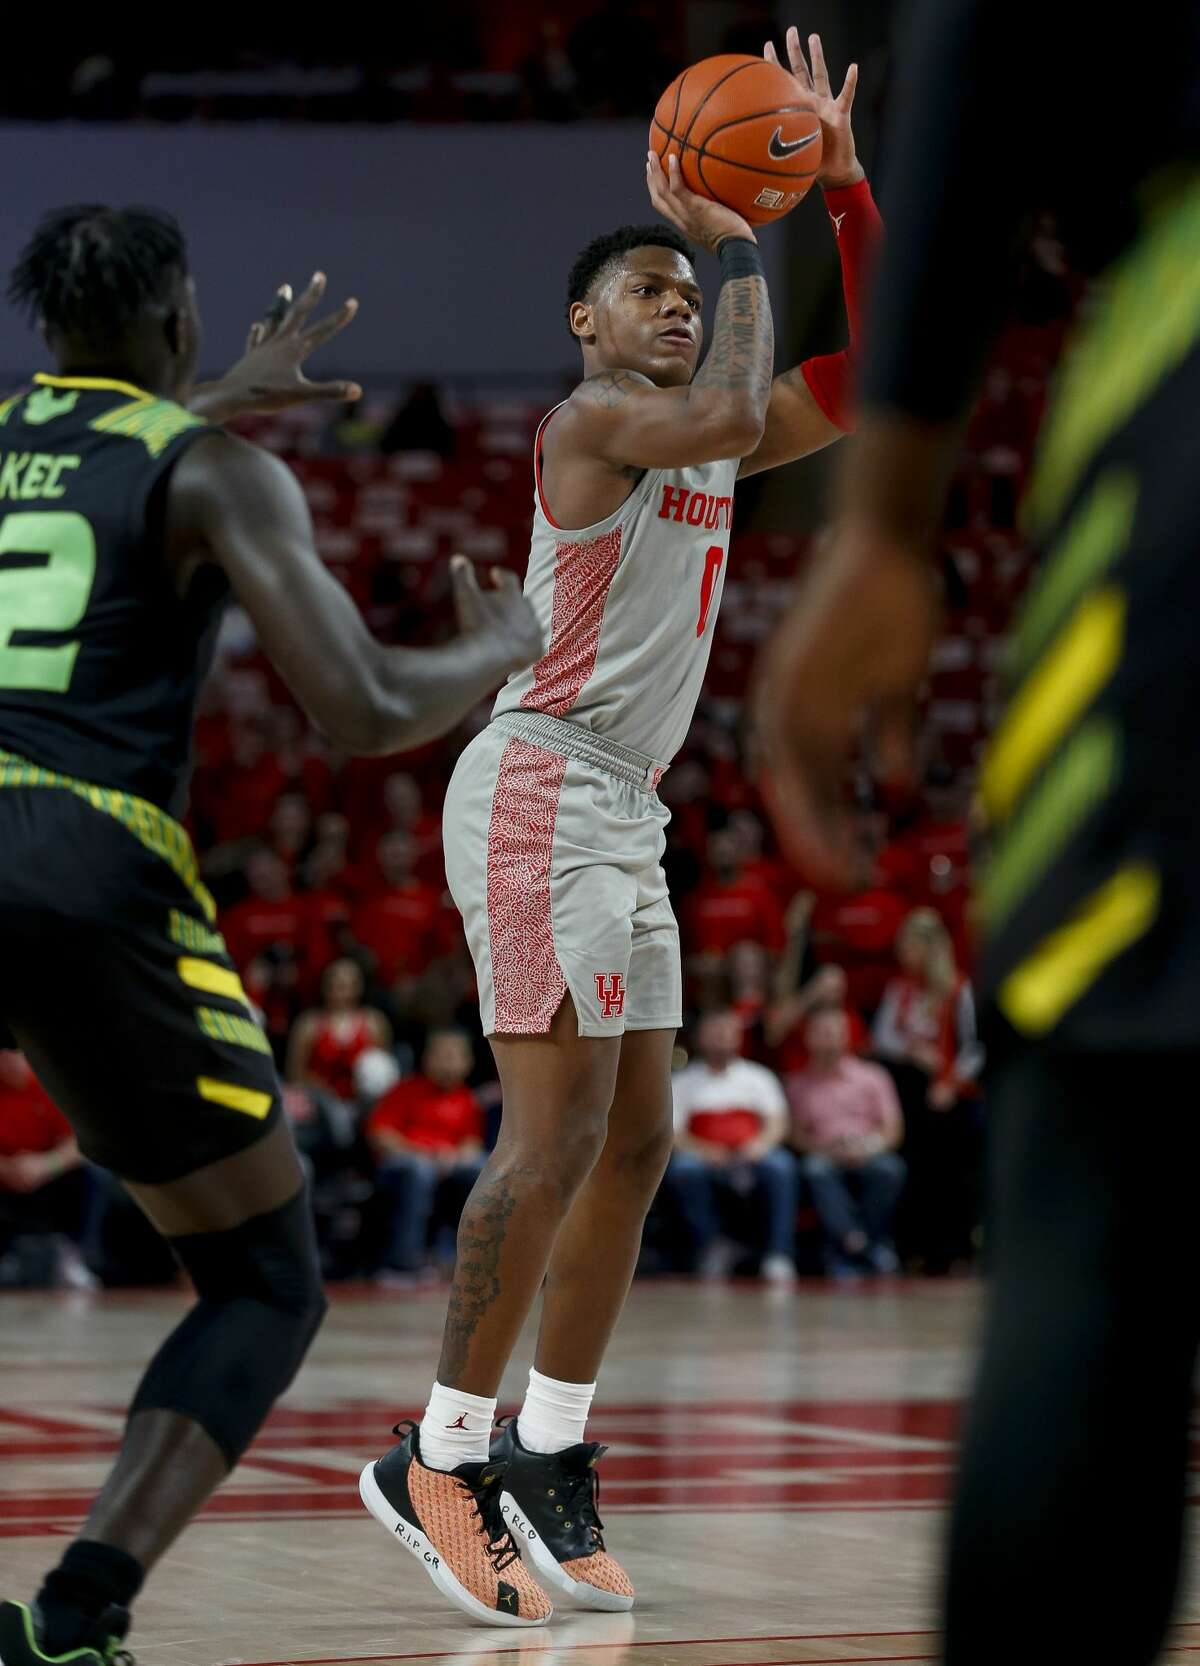 Houston Cougars guard Marcus Sasser (0) shoots a three-pointer against the South Florida Bulls during the second half of an NCAA game at the Fertitta Center Sunday, Jan. 26, 2020, in Houston. The Cougars won 68-49.